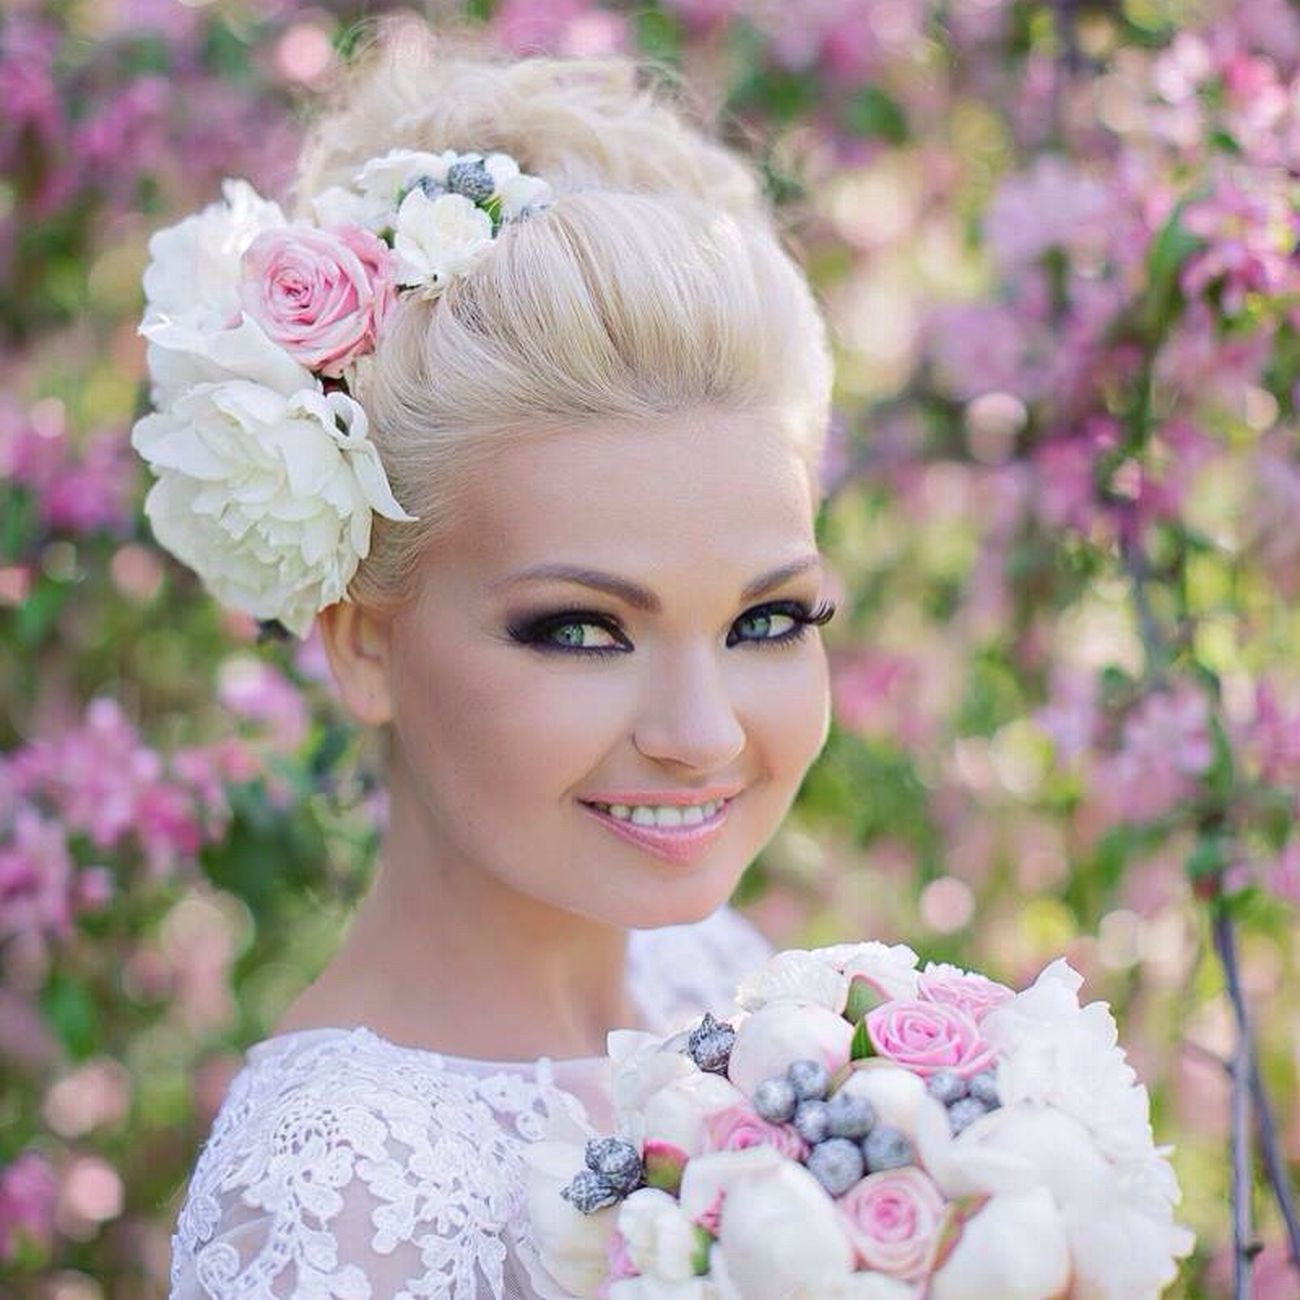 Blondehair Weddingdetails Hairstylist Novia2015 Happy Wedding Hairdresser Long Hair Blondy Weddinginitaly Blonde Hair